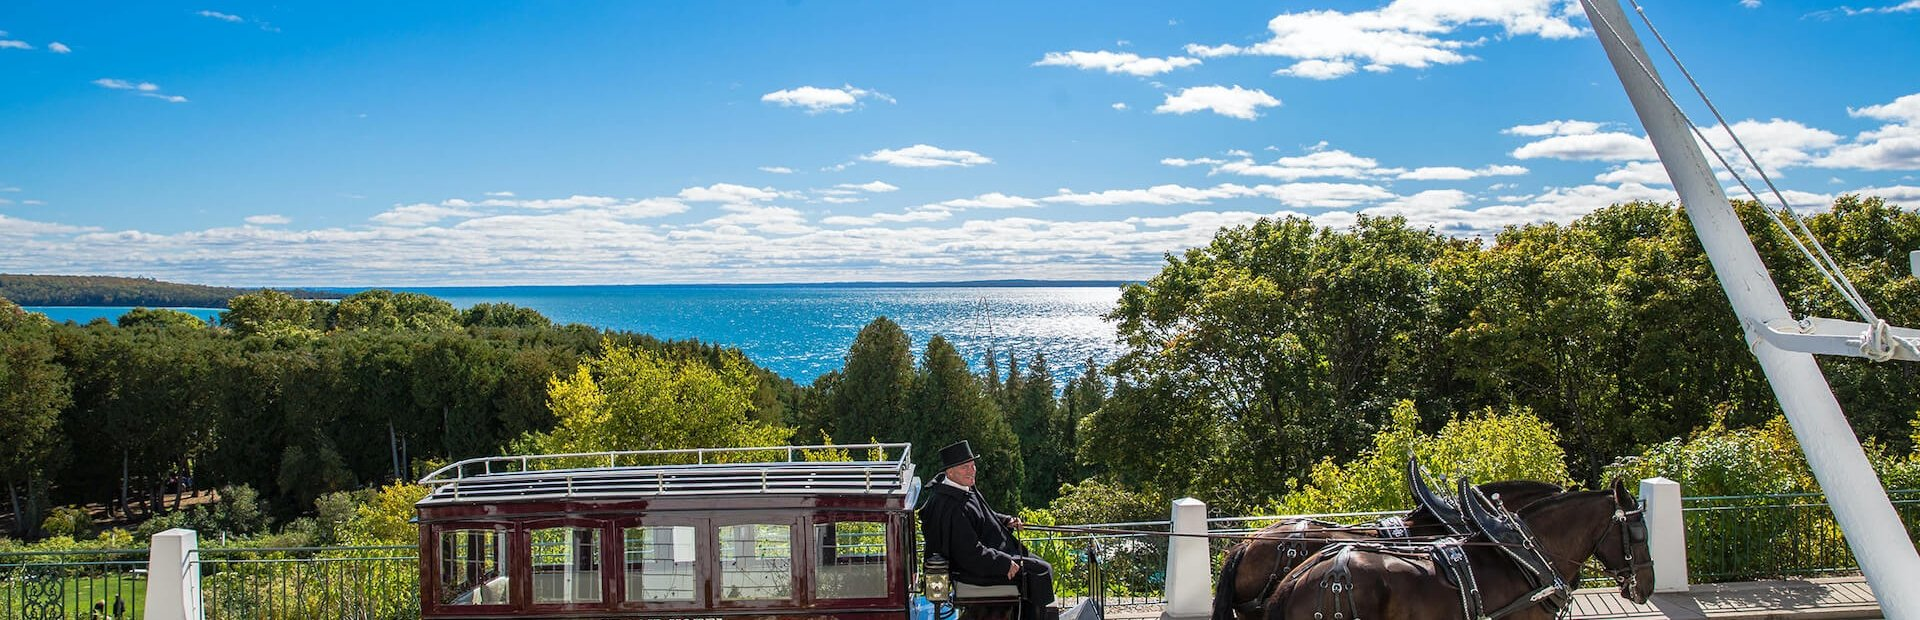 Getting Here And Around How To Get To Mackinac Island